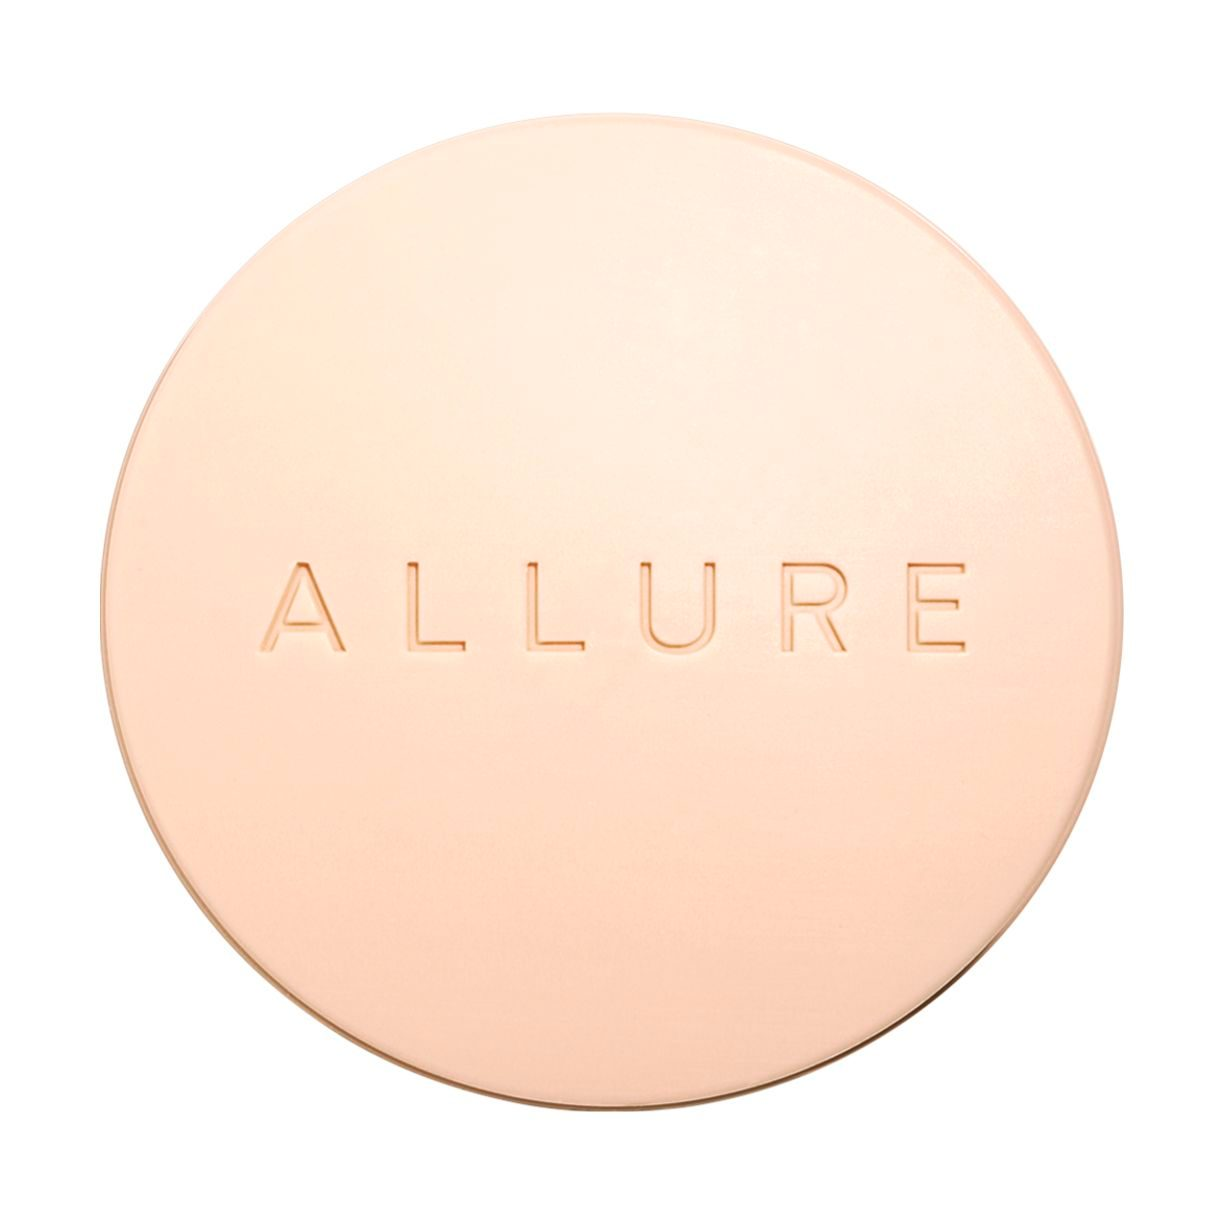 ALLURE BATH SOAP